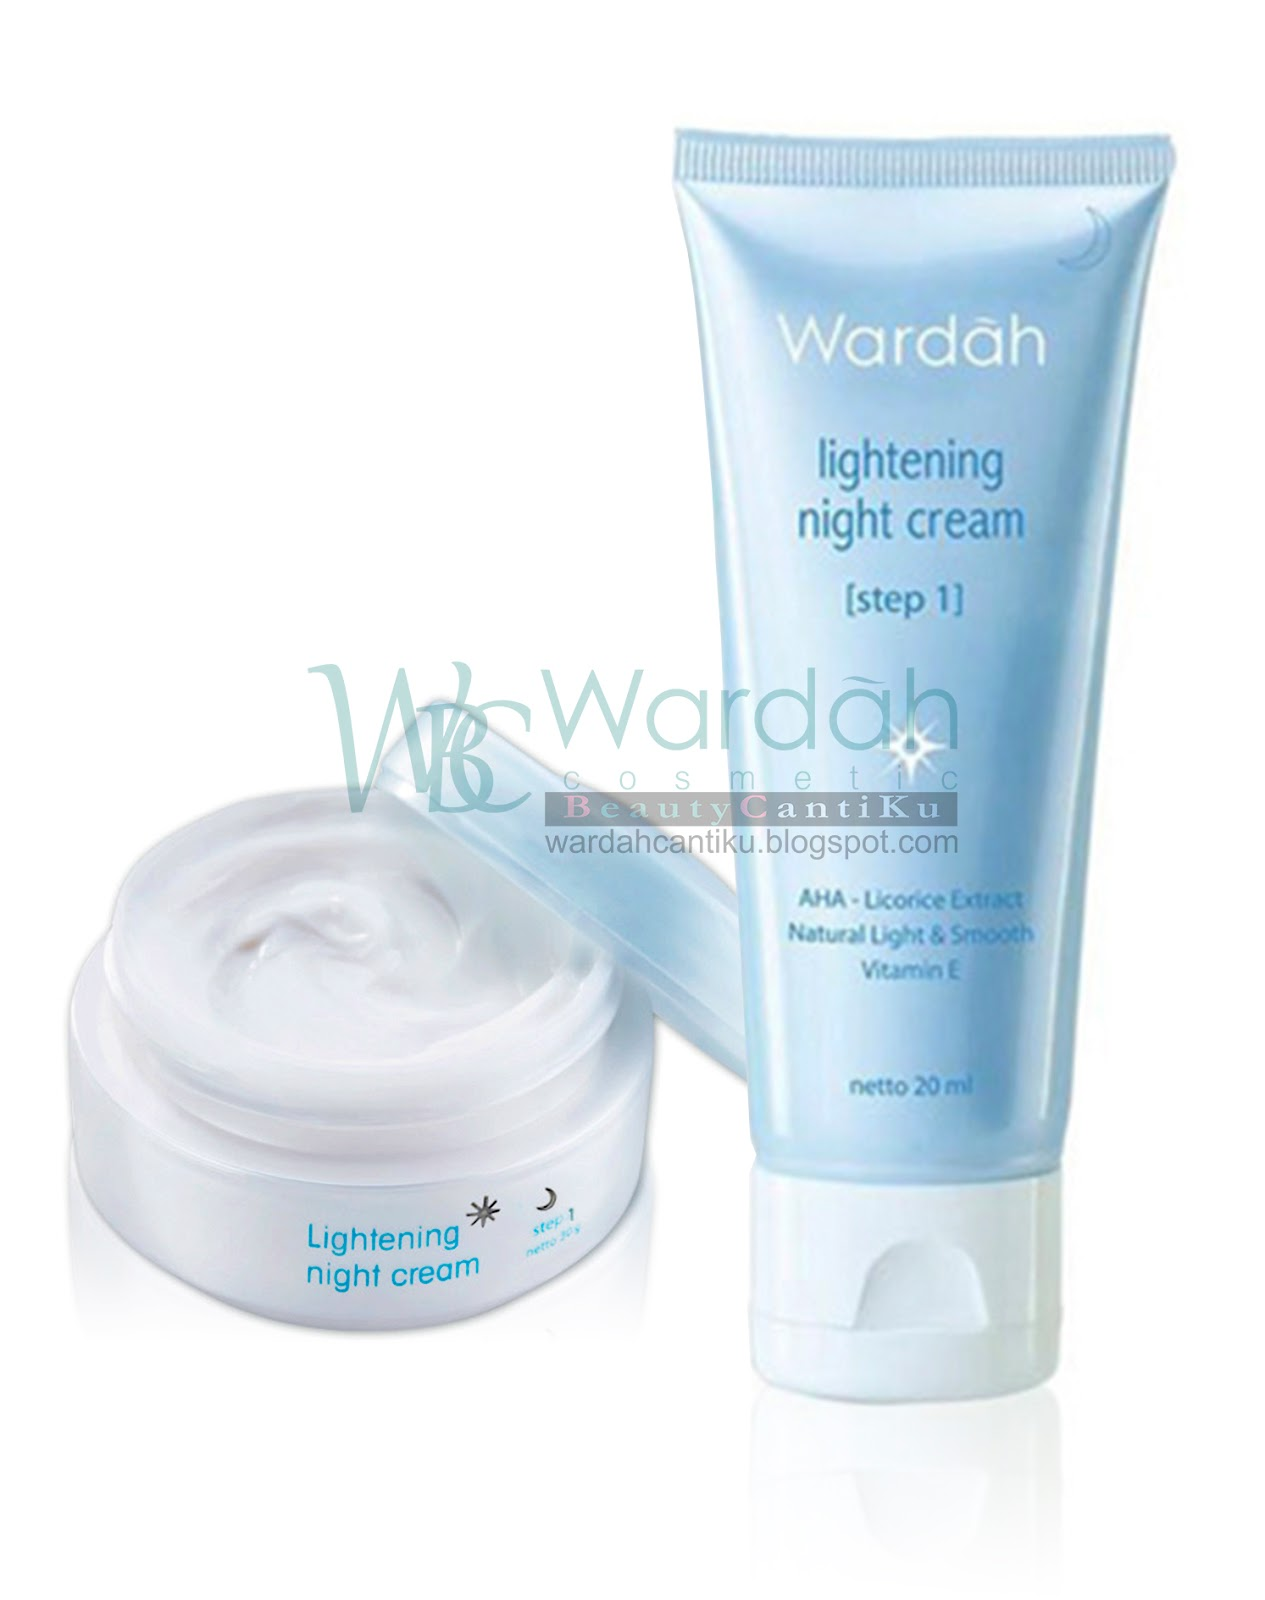 Wardah Beauty Cantiku Januari 2017 Lightening Night Cream Step 2 30gr 1 20 Ml Rp 25000 30 Gr 42000